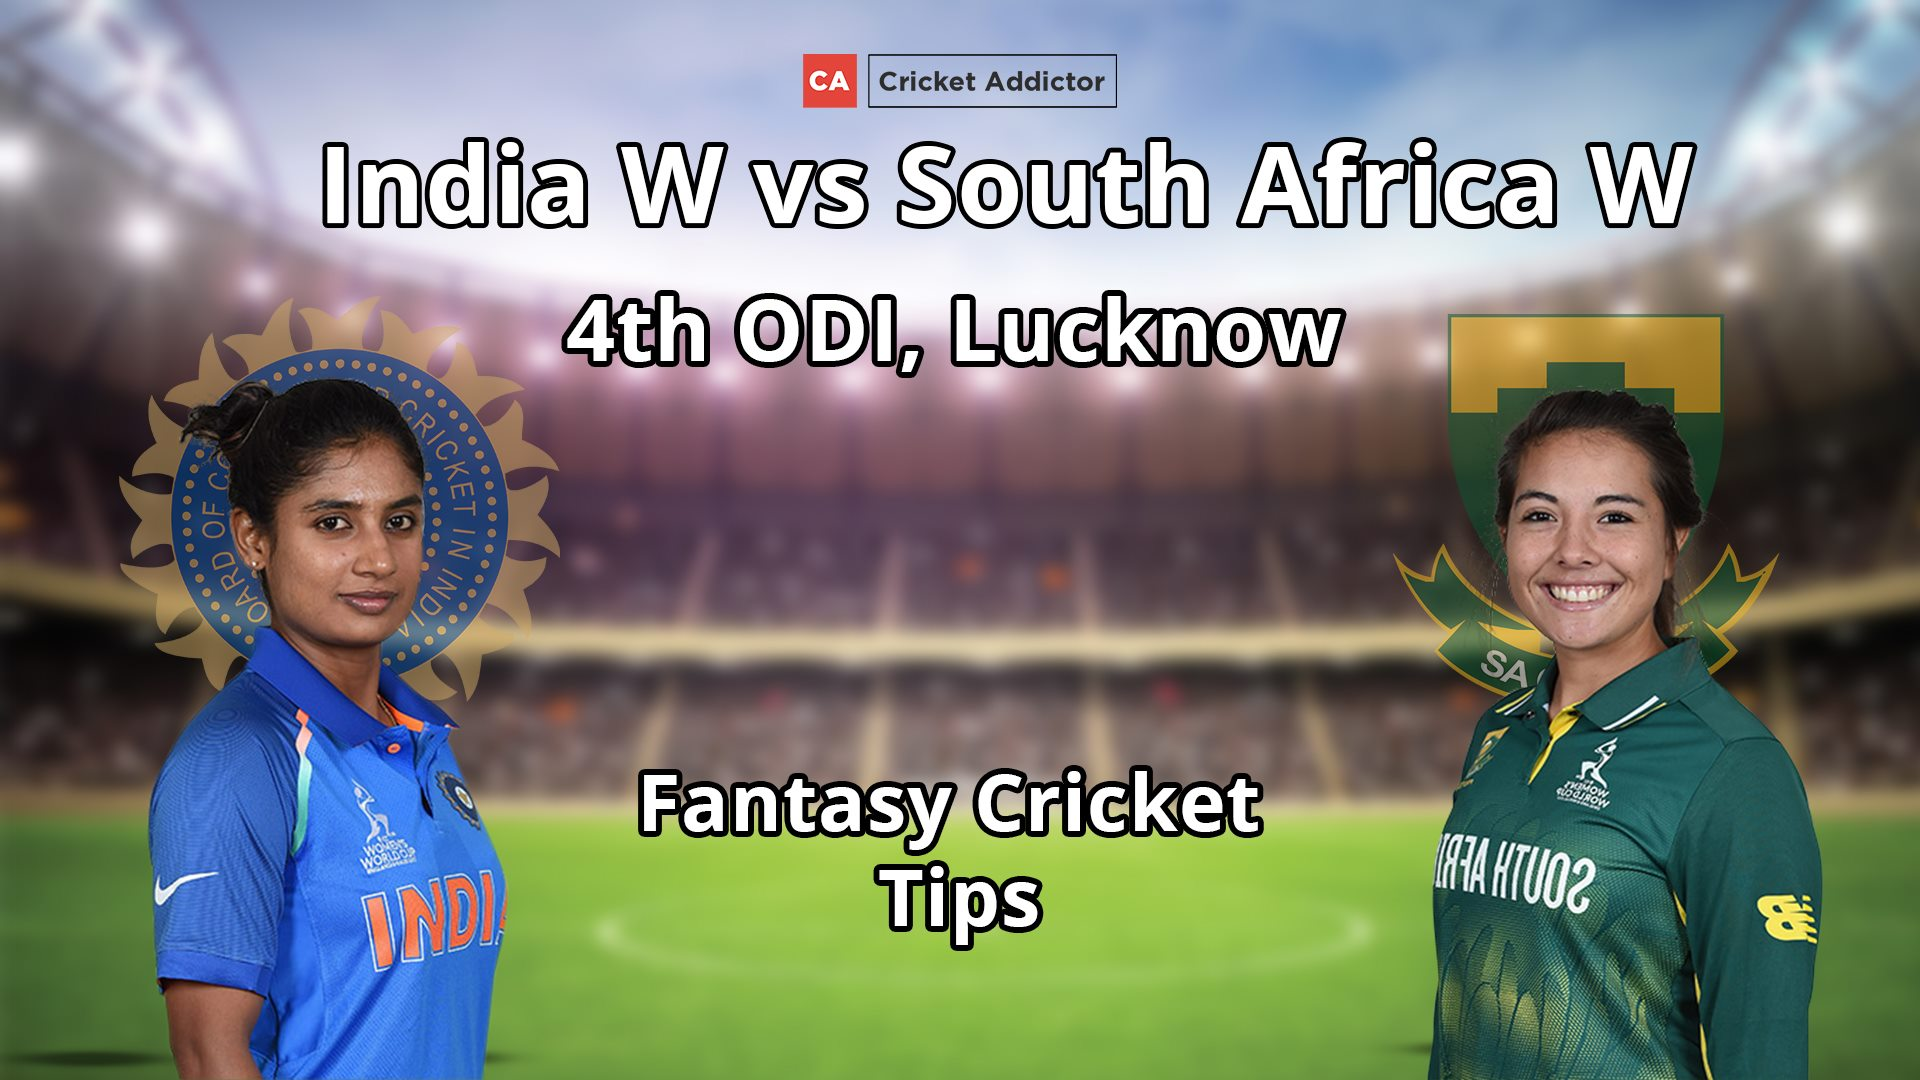 Indian Women vs South Africa Women Dream11 Prediction, Fantasy Cricket Tips, Playing XI, Pitch Report, Dream11 Team, Injury Update.